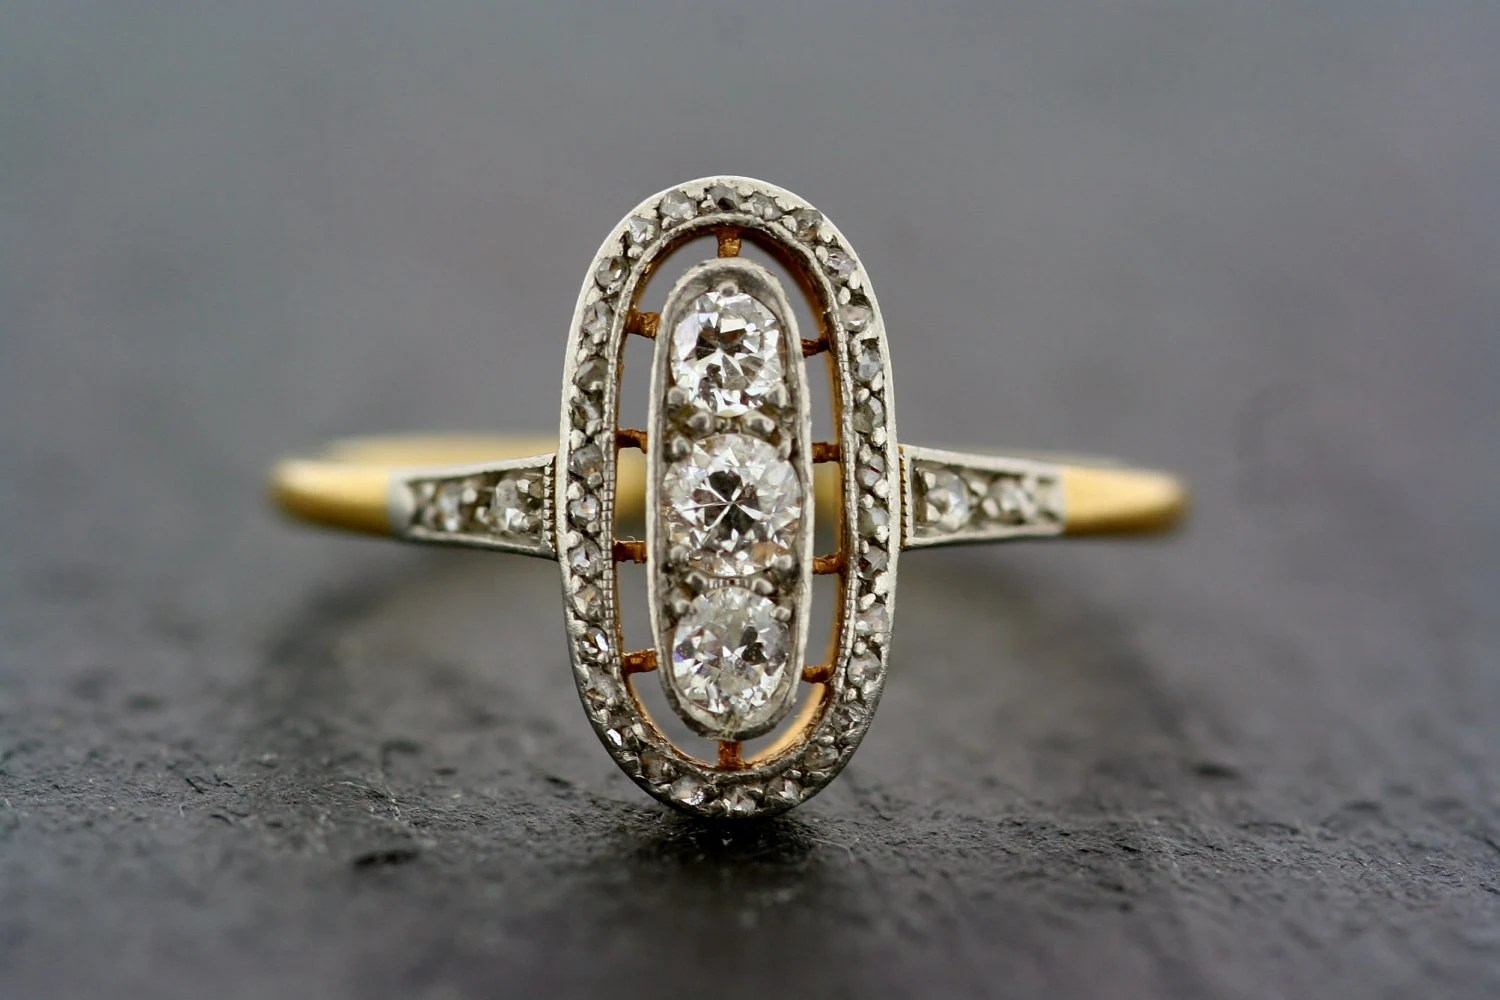 Art Deco Ring -  Antique Diamond Art Deco 18ct Gold & Platinum Ring